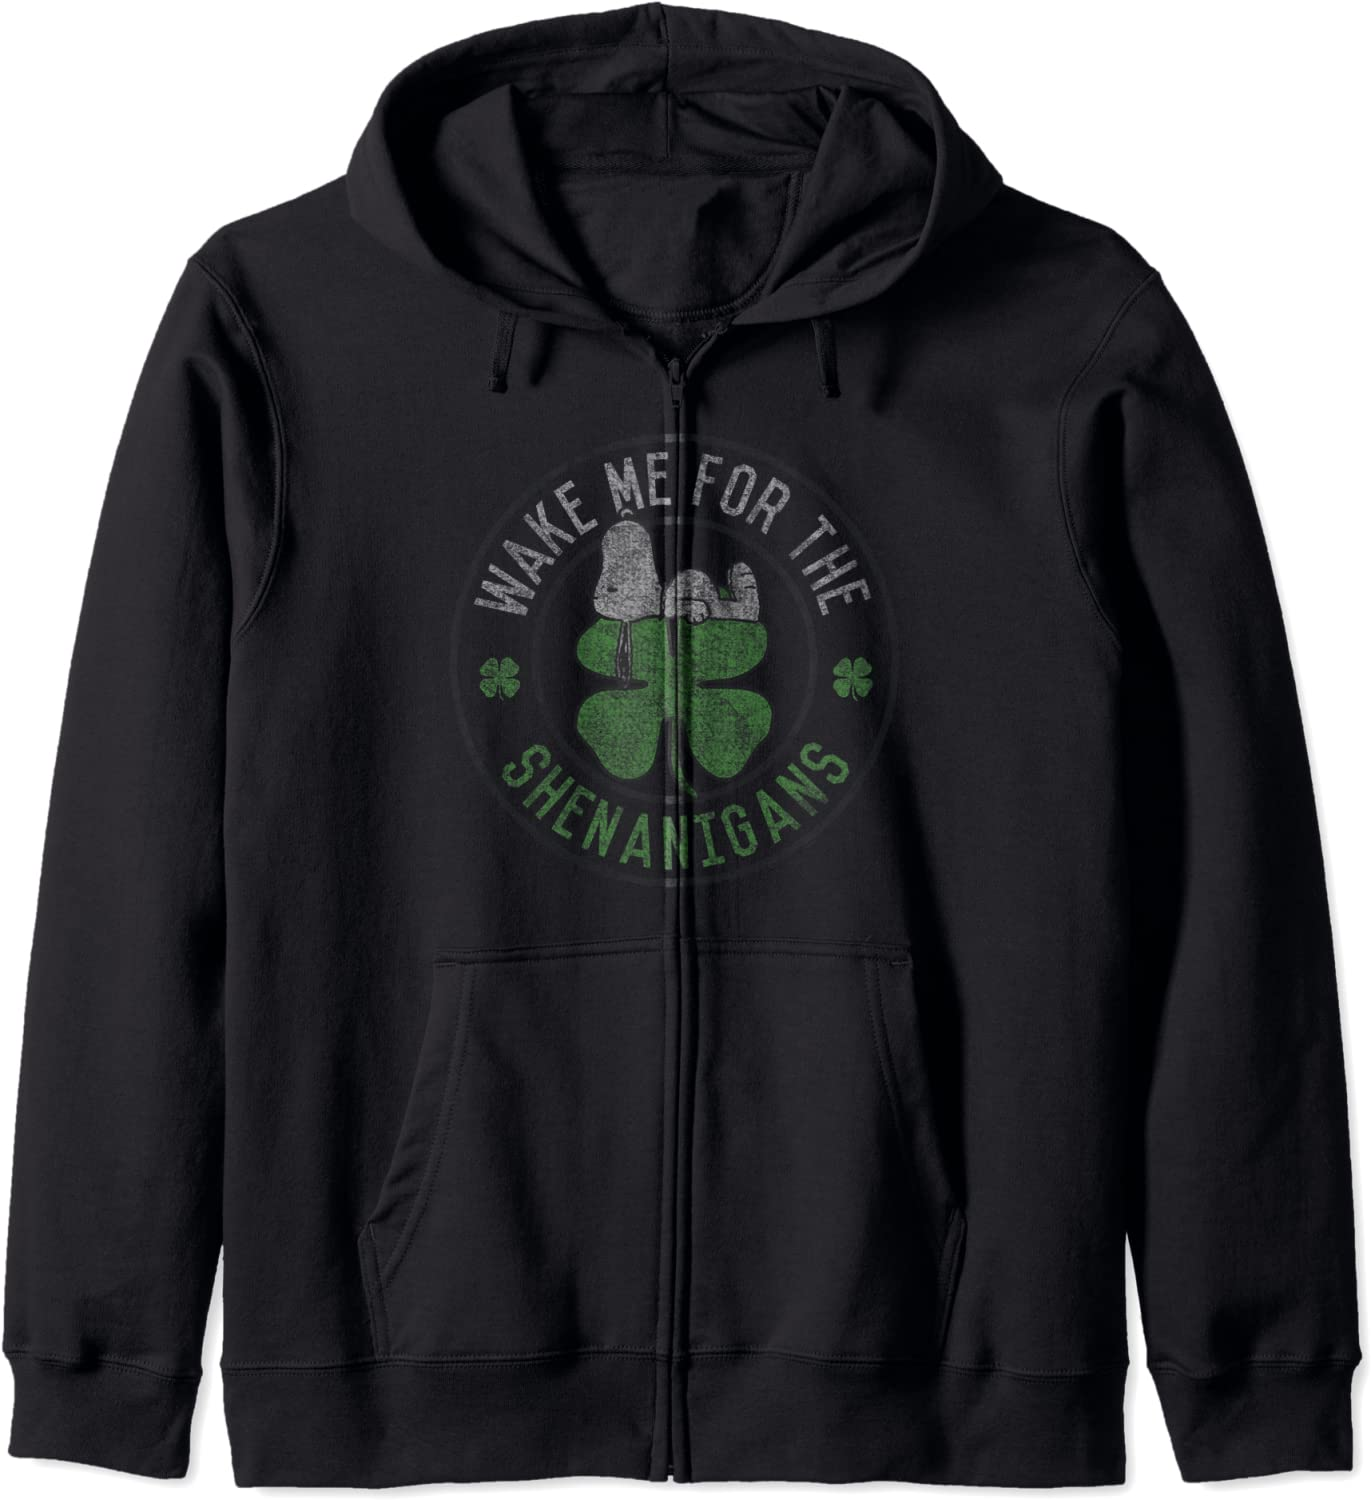 Peanuts St Patrick's Day Wake Me lowest price NEW before selling Zip Shenanigans For Up Hoodie